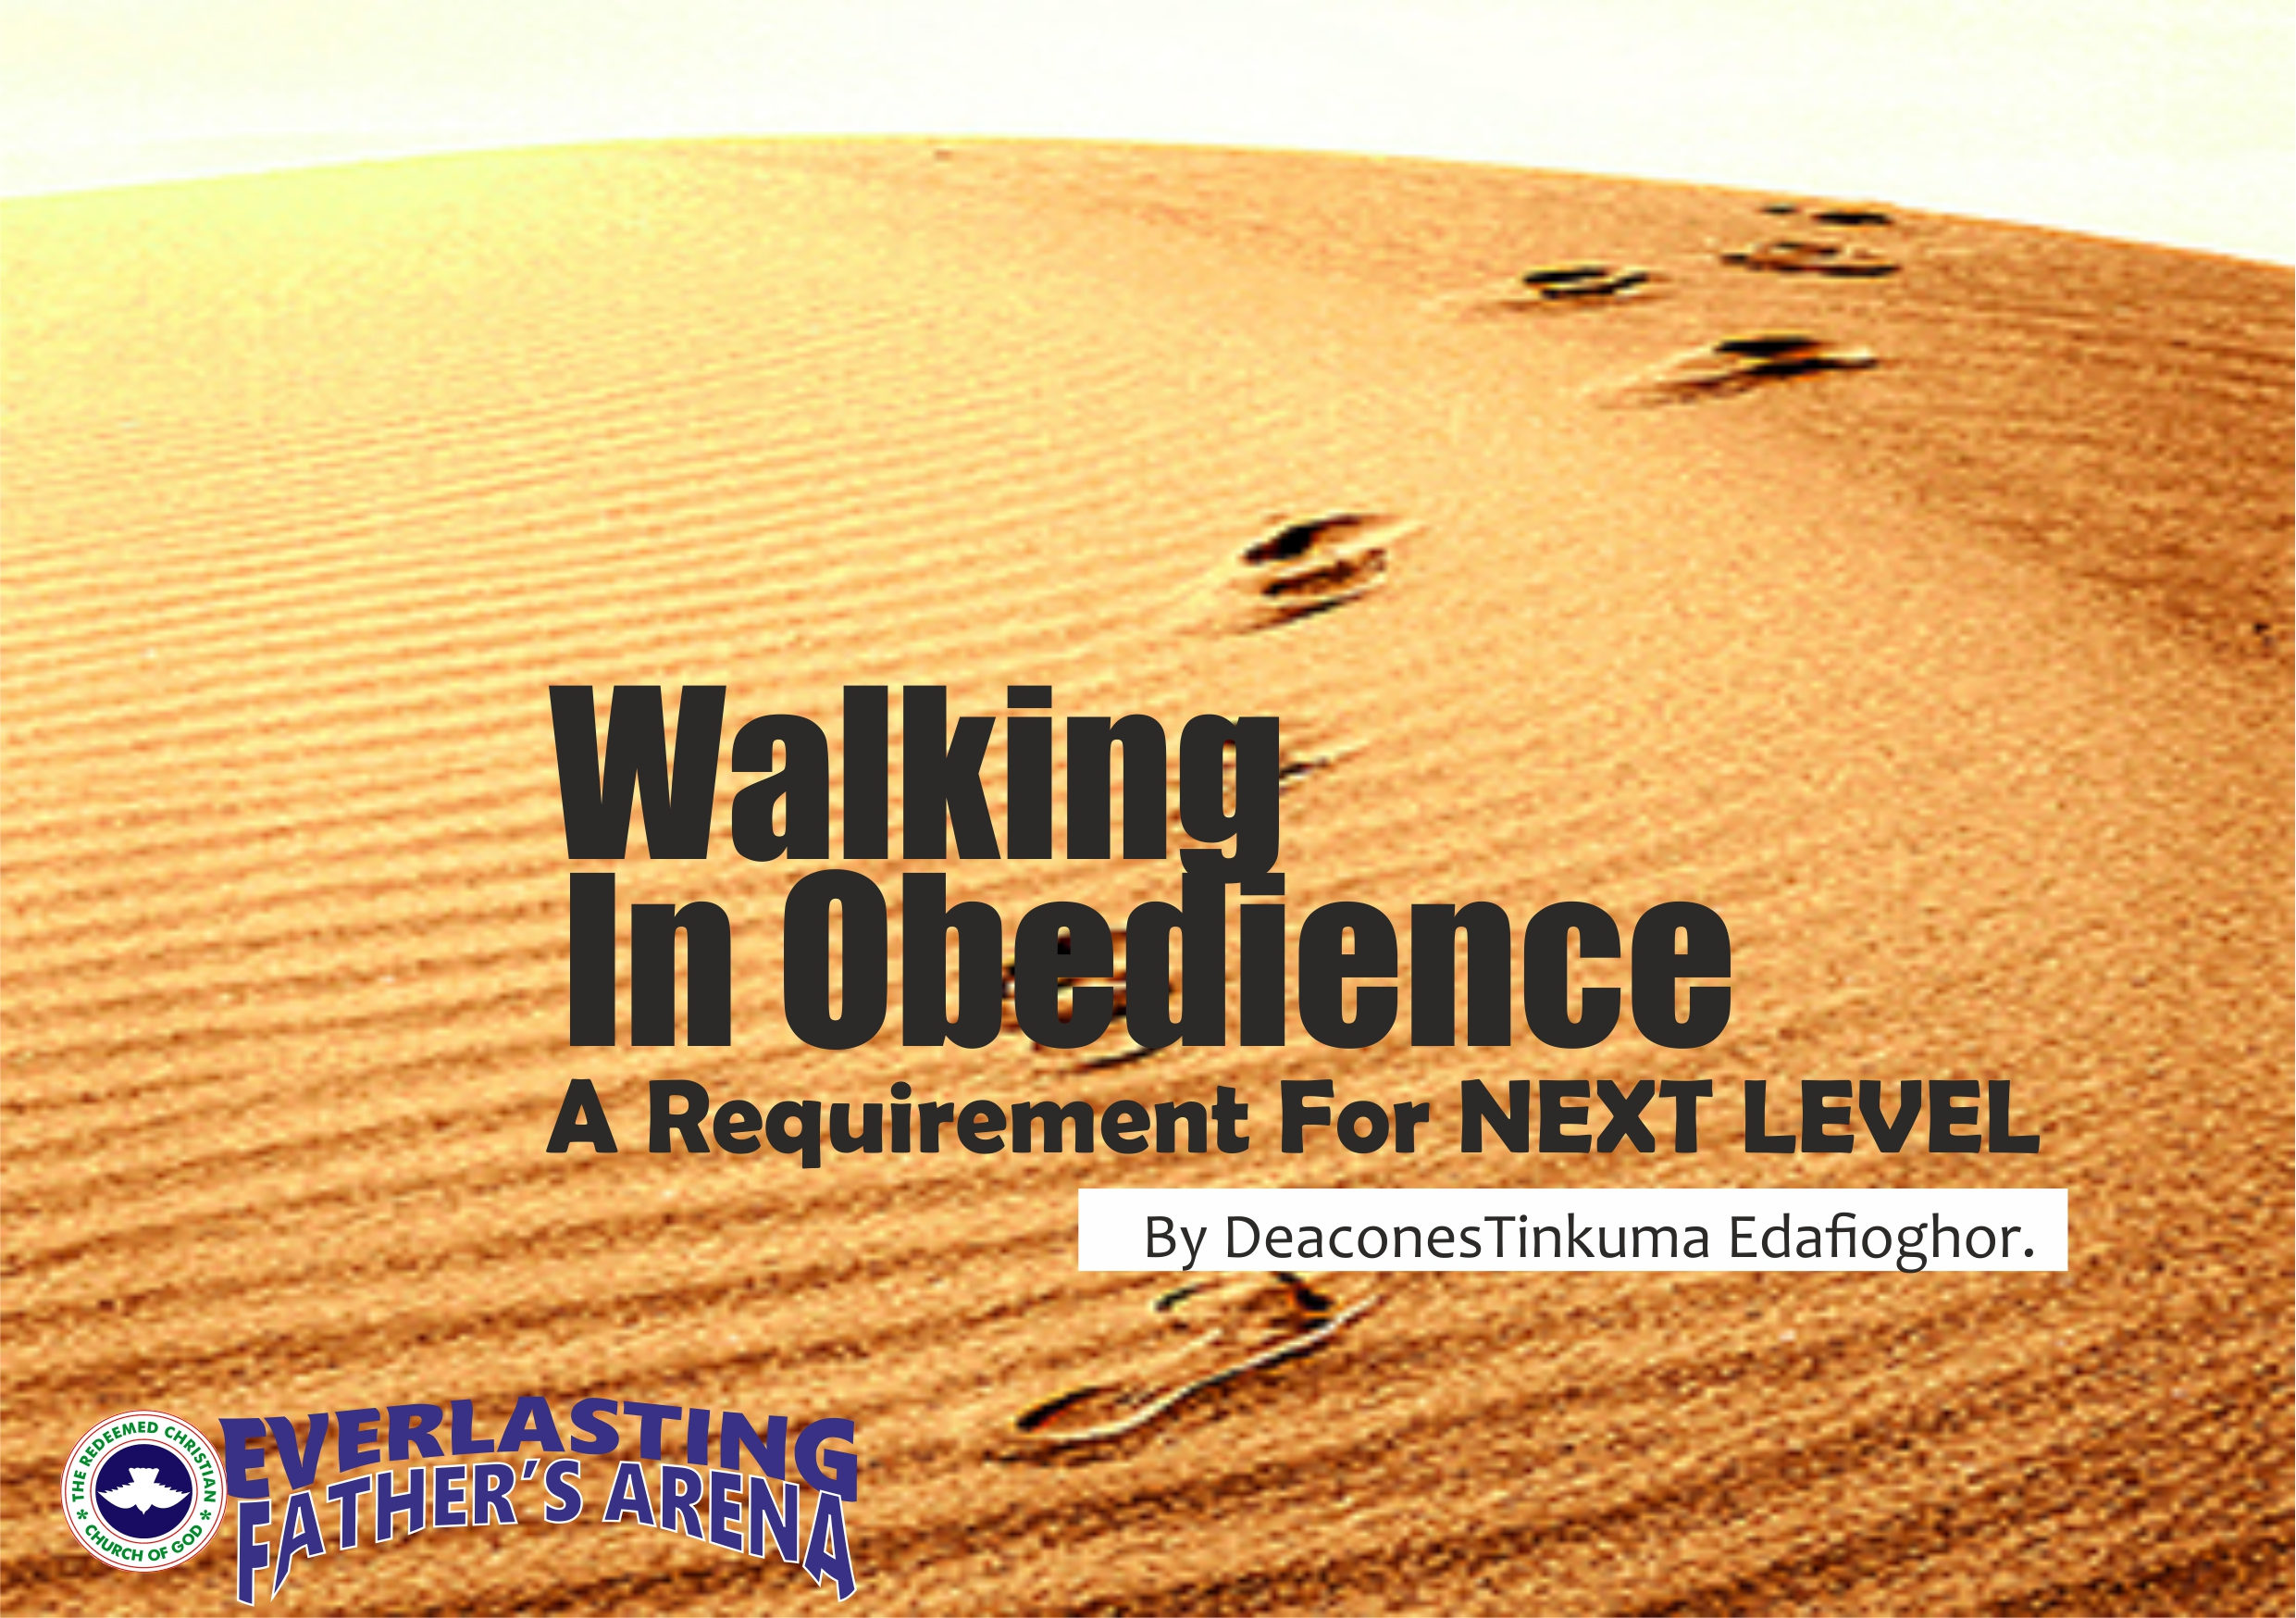 Walking In Obedience: A Requirement For Next Levels, by Deaconess Tinkuma Edafioghor